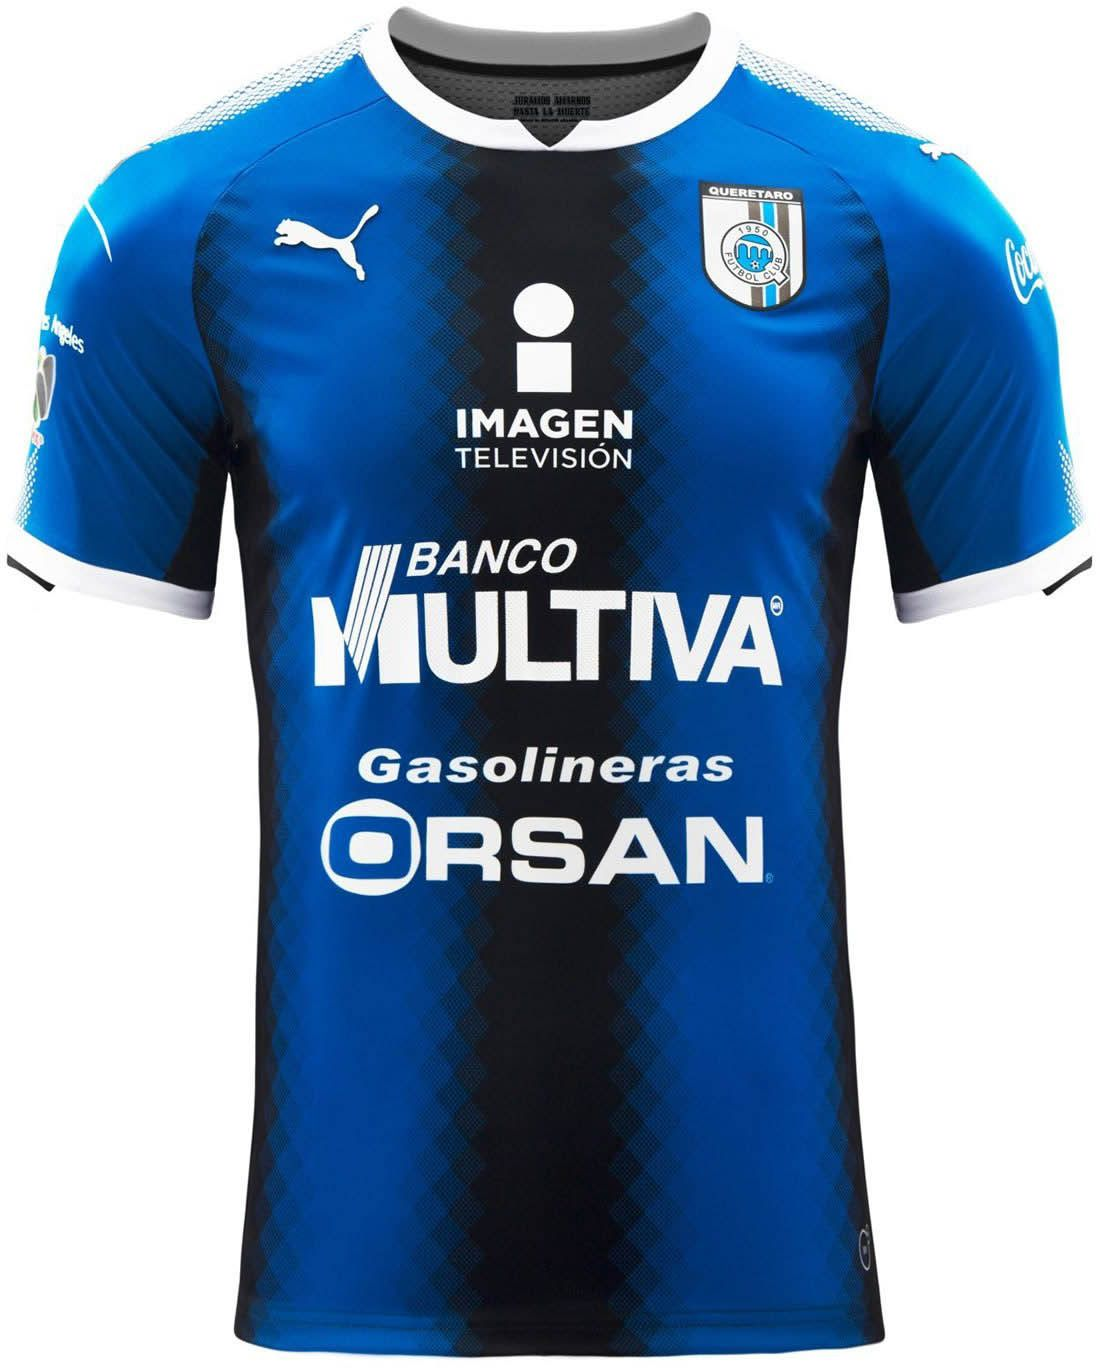 The new Puma Club Querétaro 17-18 home jersey introduces an outstanding  look. 1c1b6447c2a98